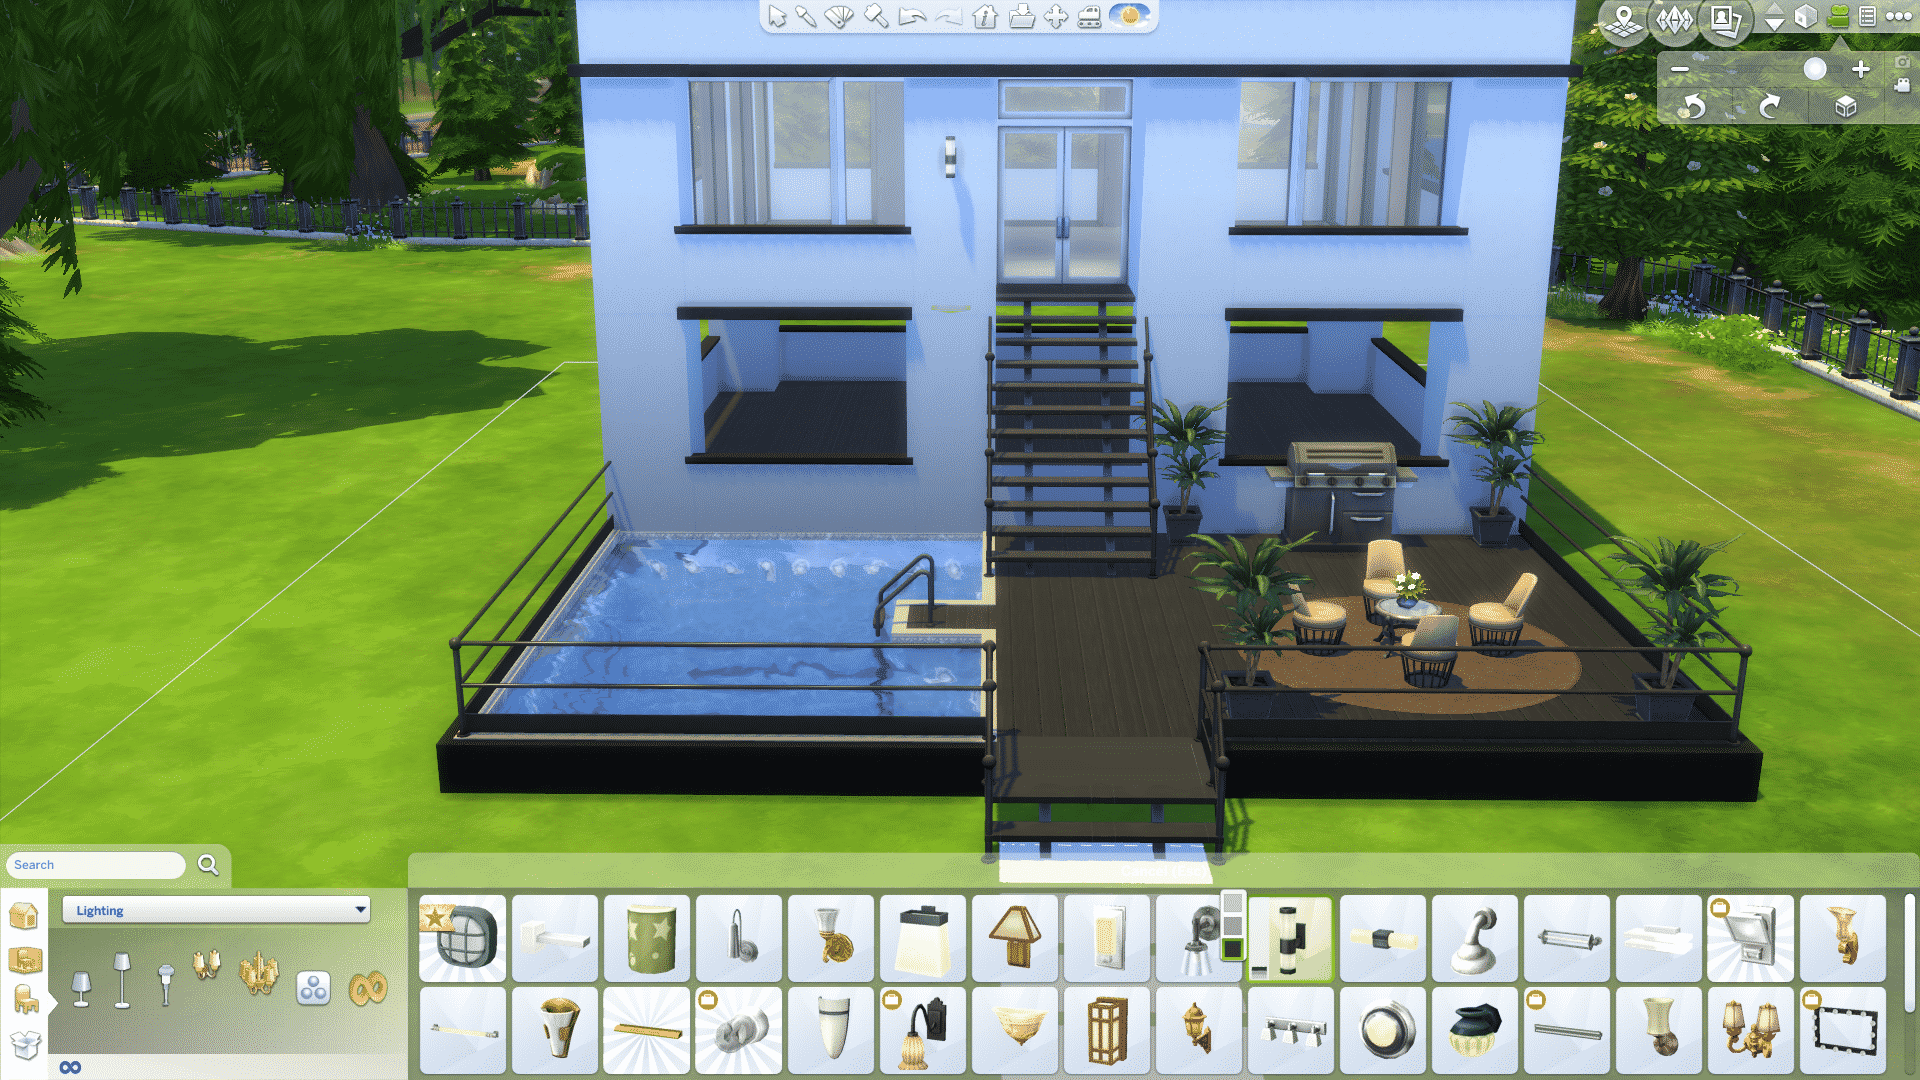 The Sims 4: How to Build a Simple Modern House